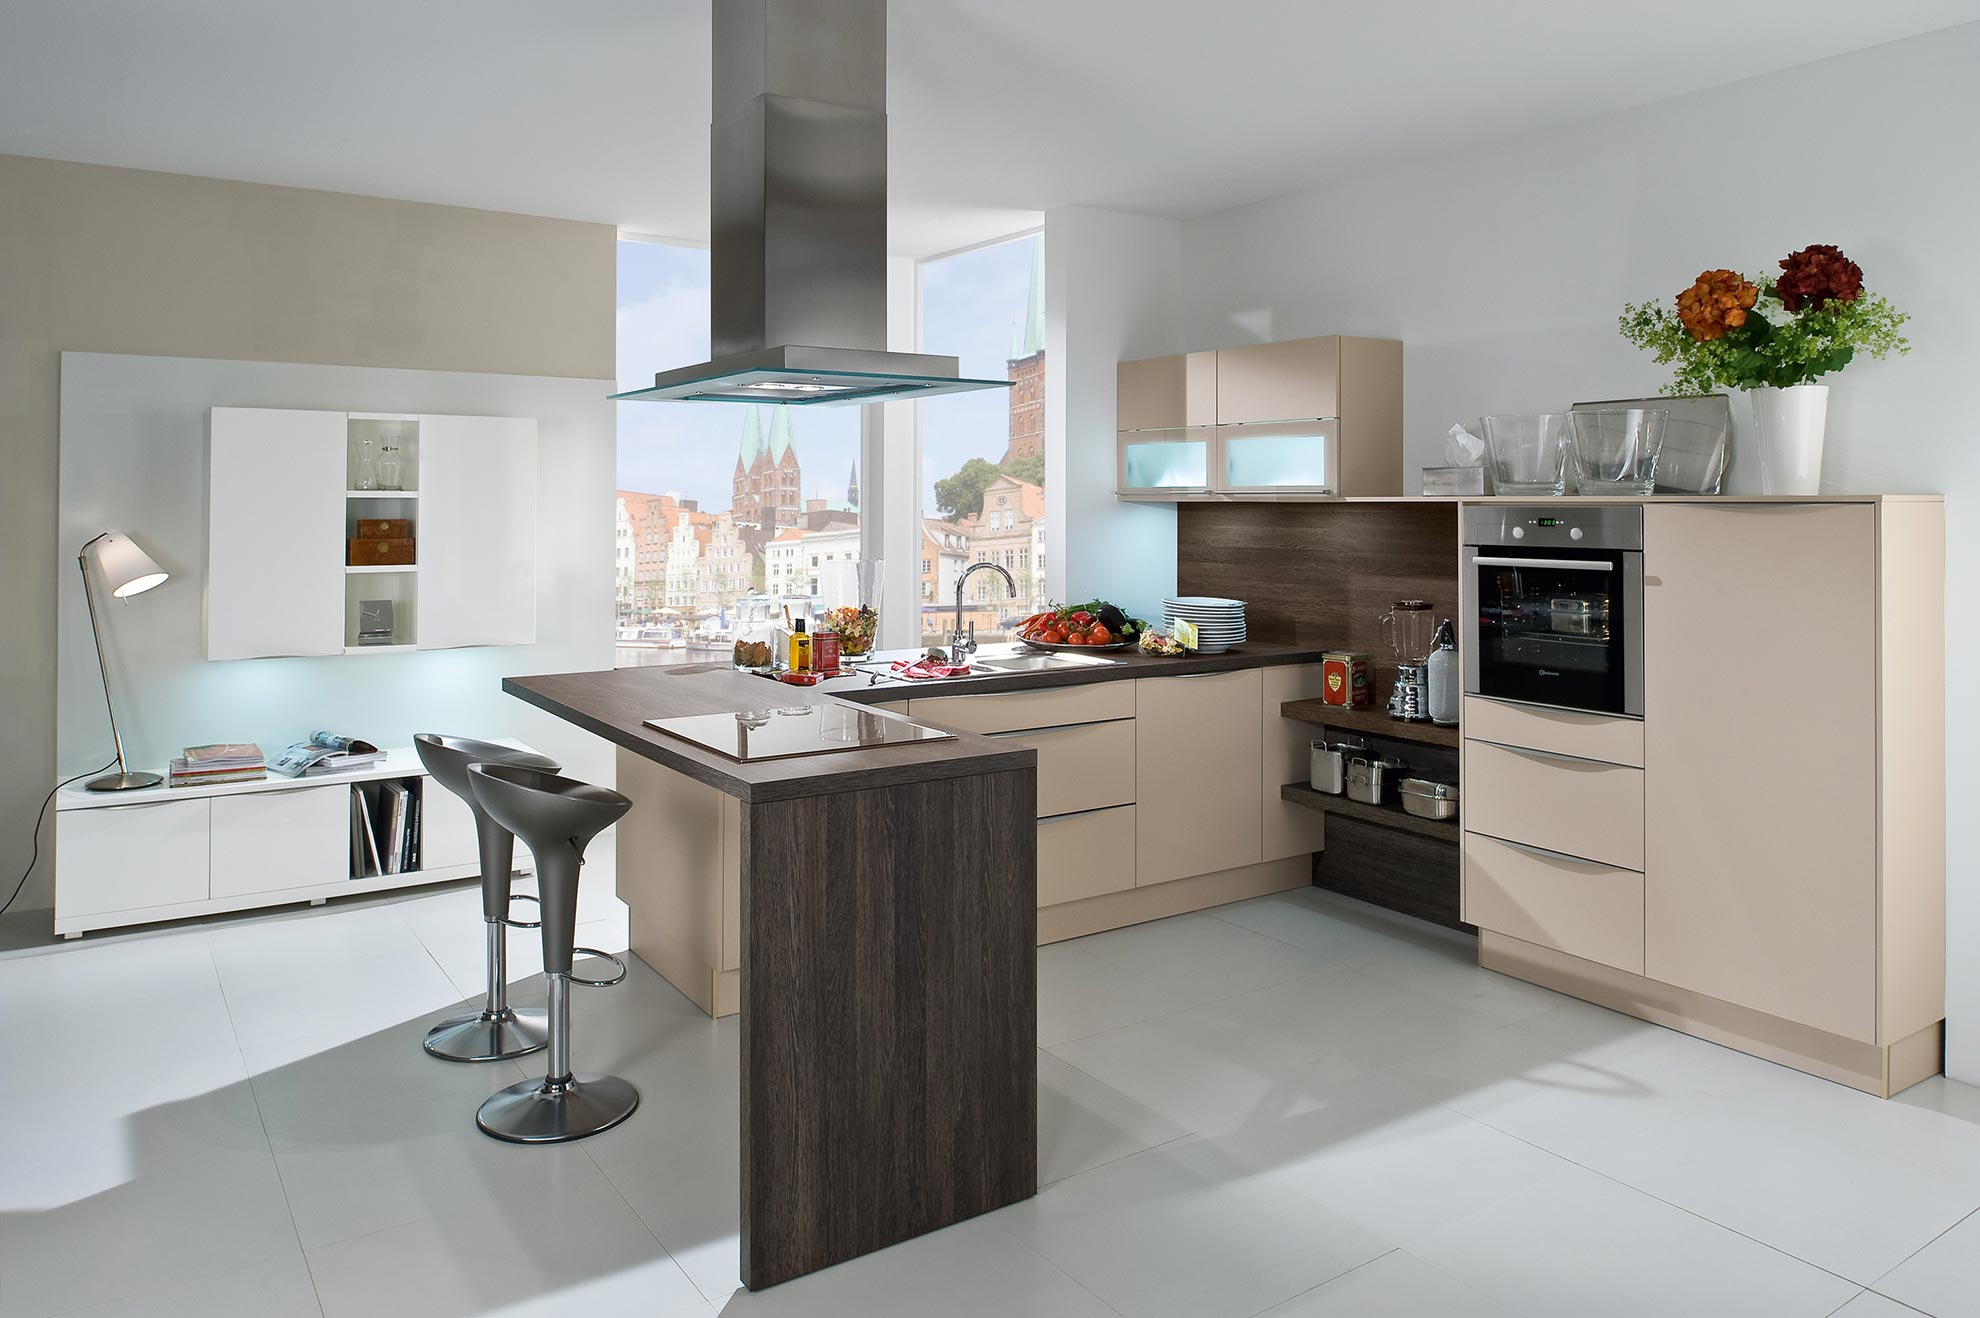 Kitchens bedford bedfordshire fitted kitchen installation for Kitchen pics